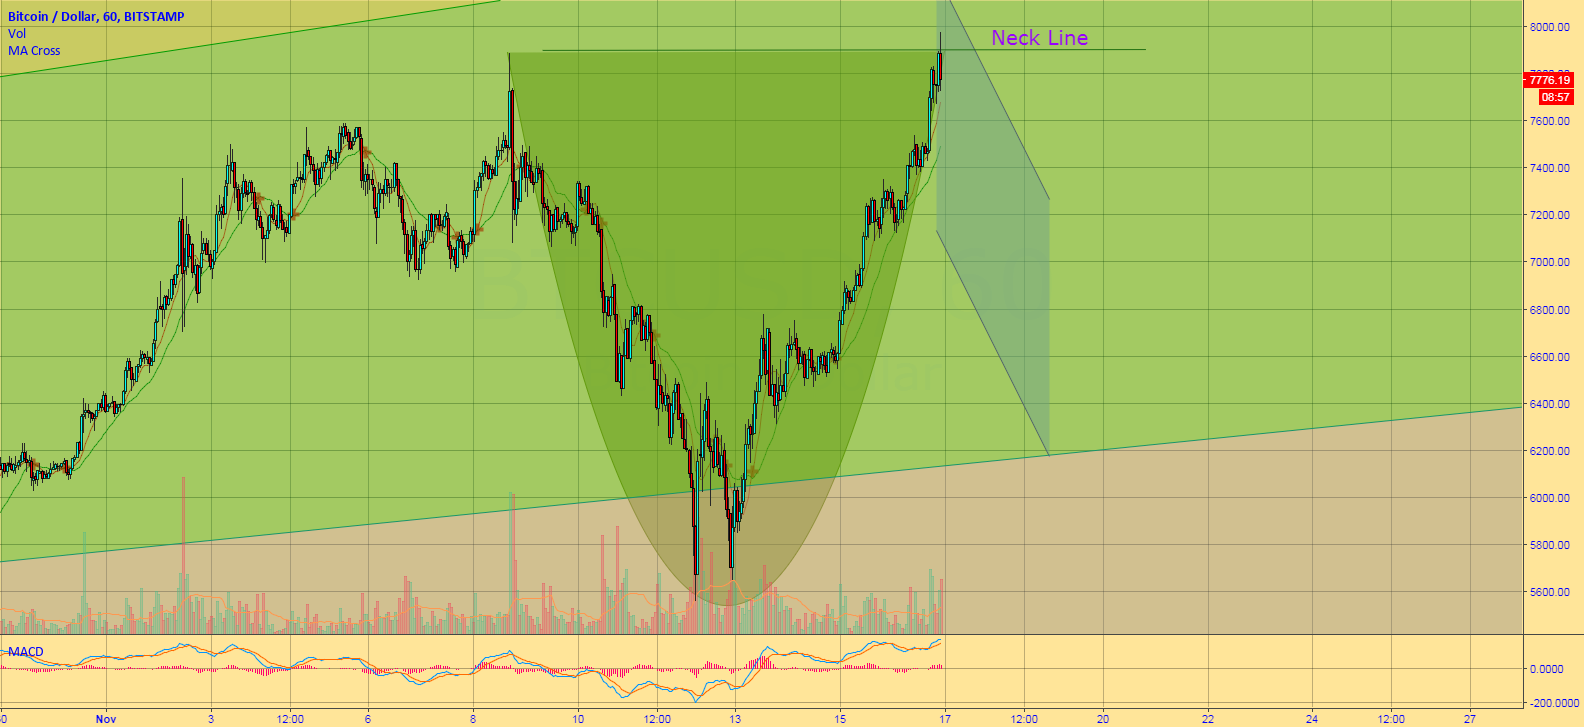 Bitcoin 8k - Cup and Handle Formation Progress